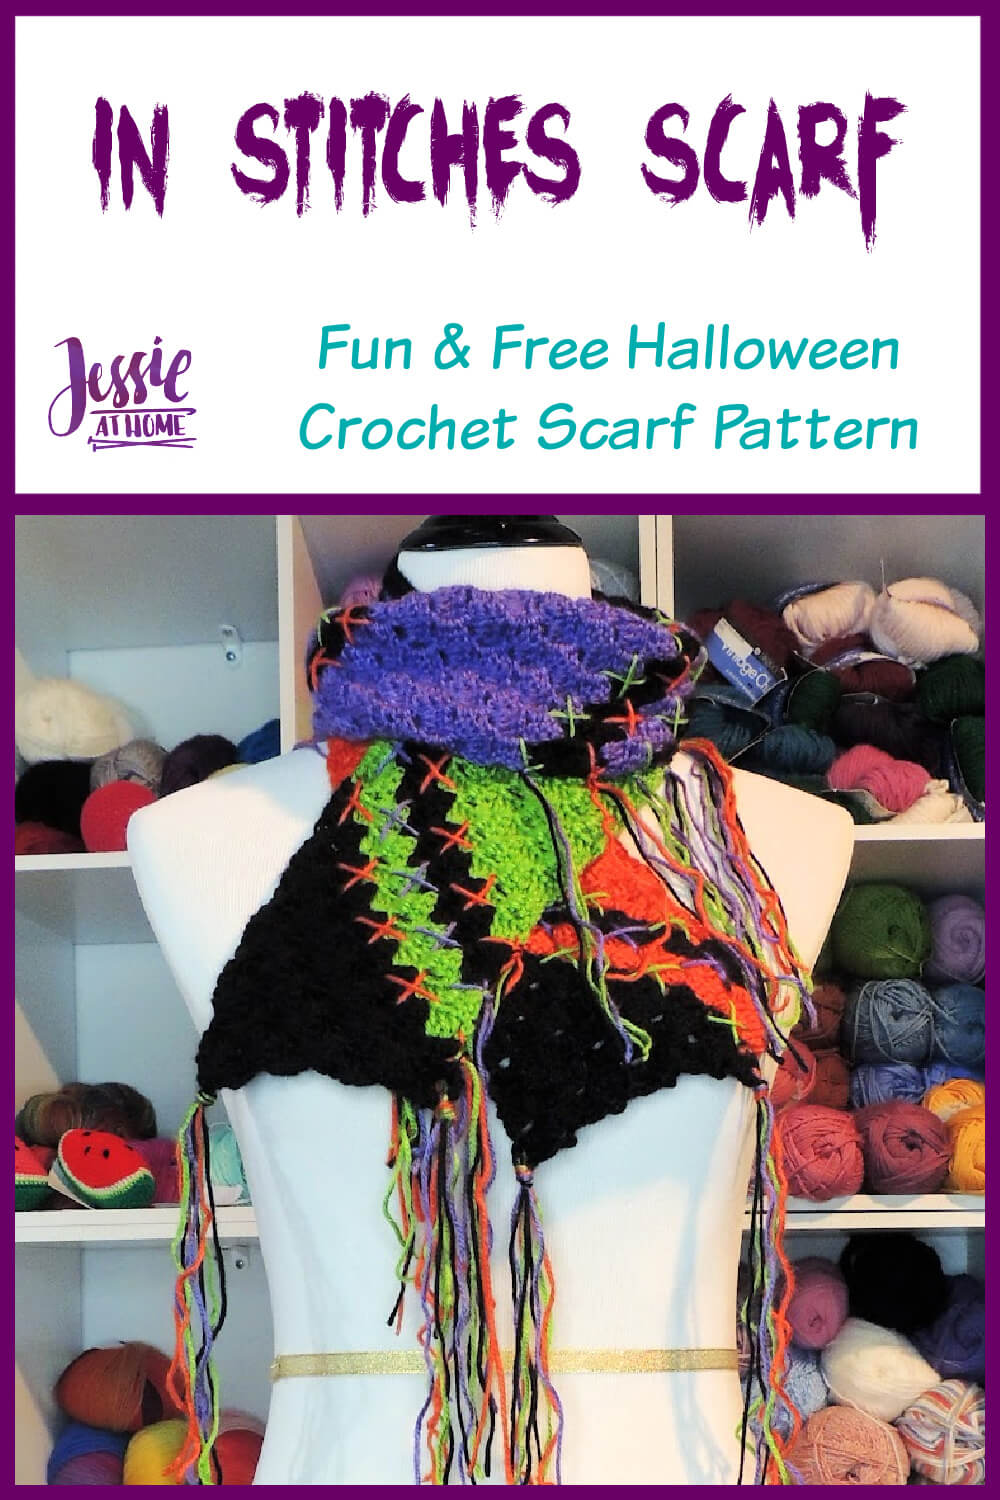 """A white vertical rectangle with purple boarder. On the top third is text """"In Stitches Scarf"""" and """"Fun & fast Halloween crochet scarf pattern"""" and """"Jessie At Home"""". The bottom two thirds is a photo of white cubbies full of yarn, in front of the cubbies is a white dress form wearing a corner to corner crochet scarf with diagonal lines of black, green, purple, and orange, with stitches at the color changes."""